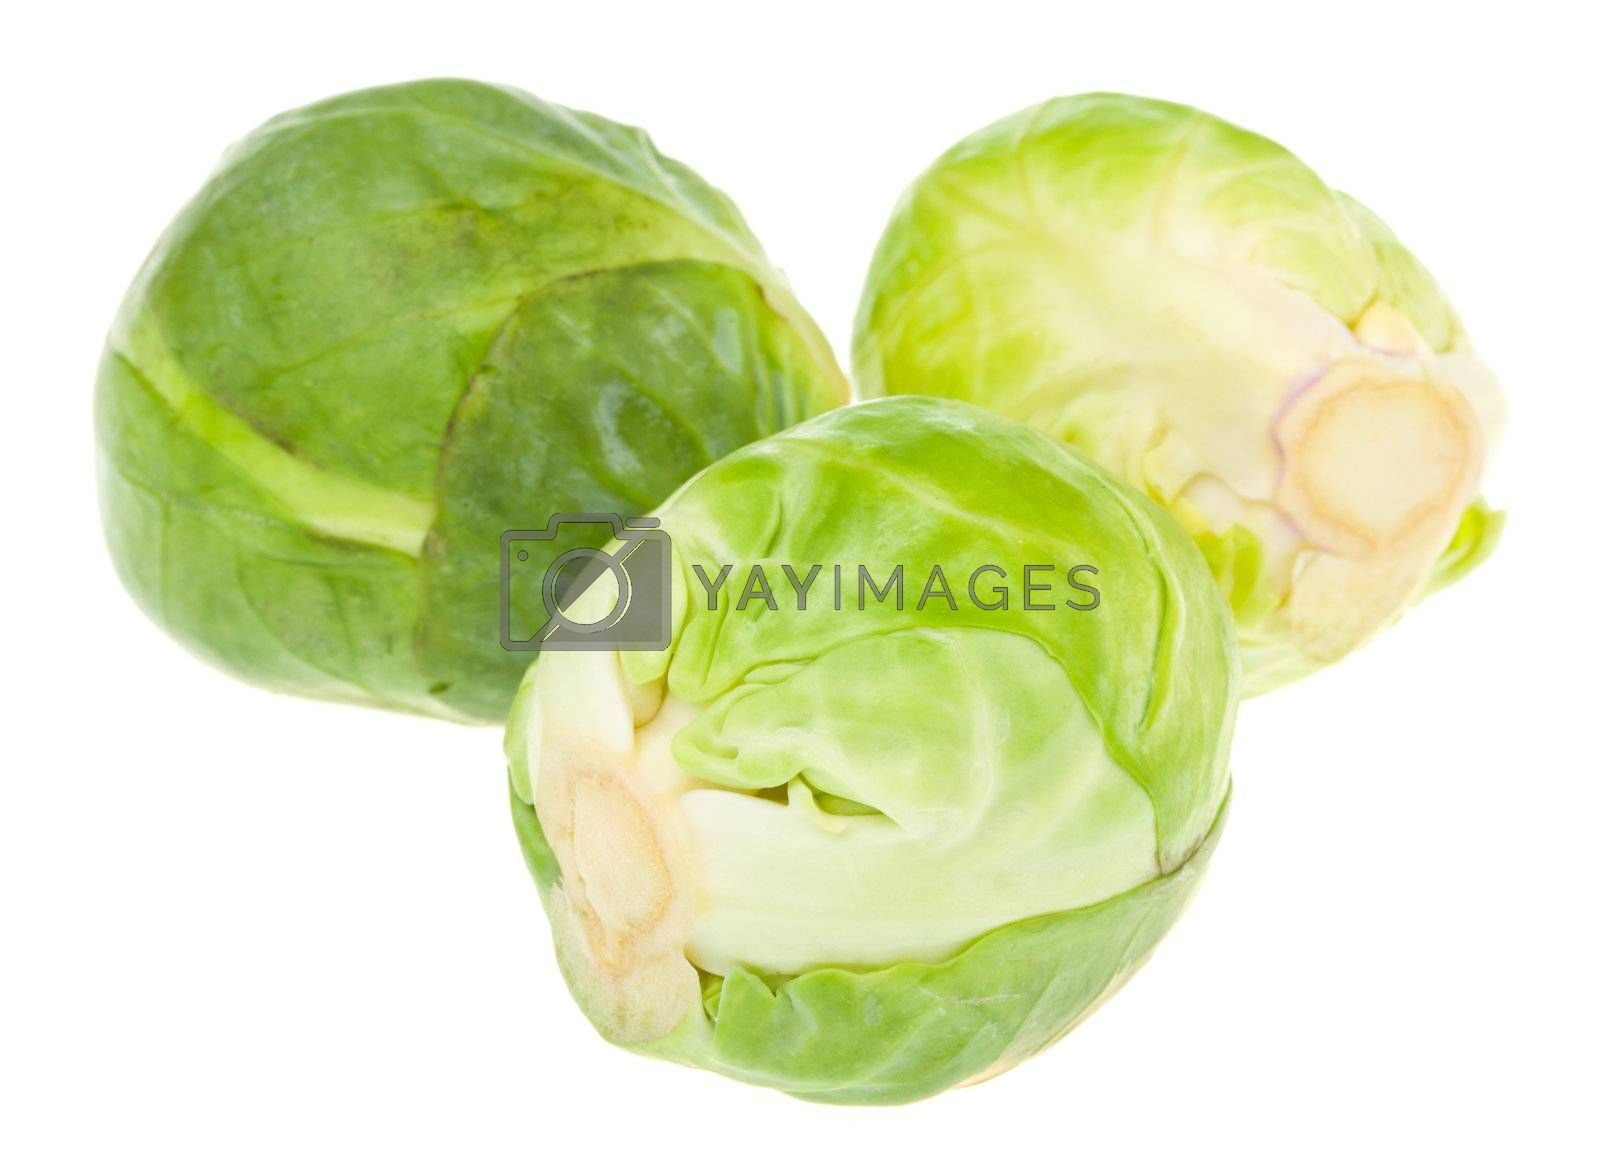 Royalty free image of three brussels sprouts isolated by Alekcey